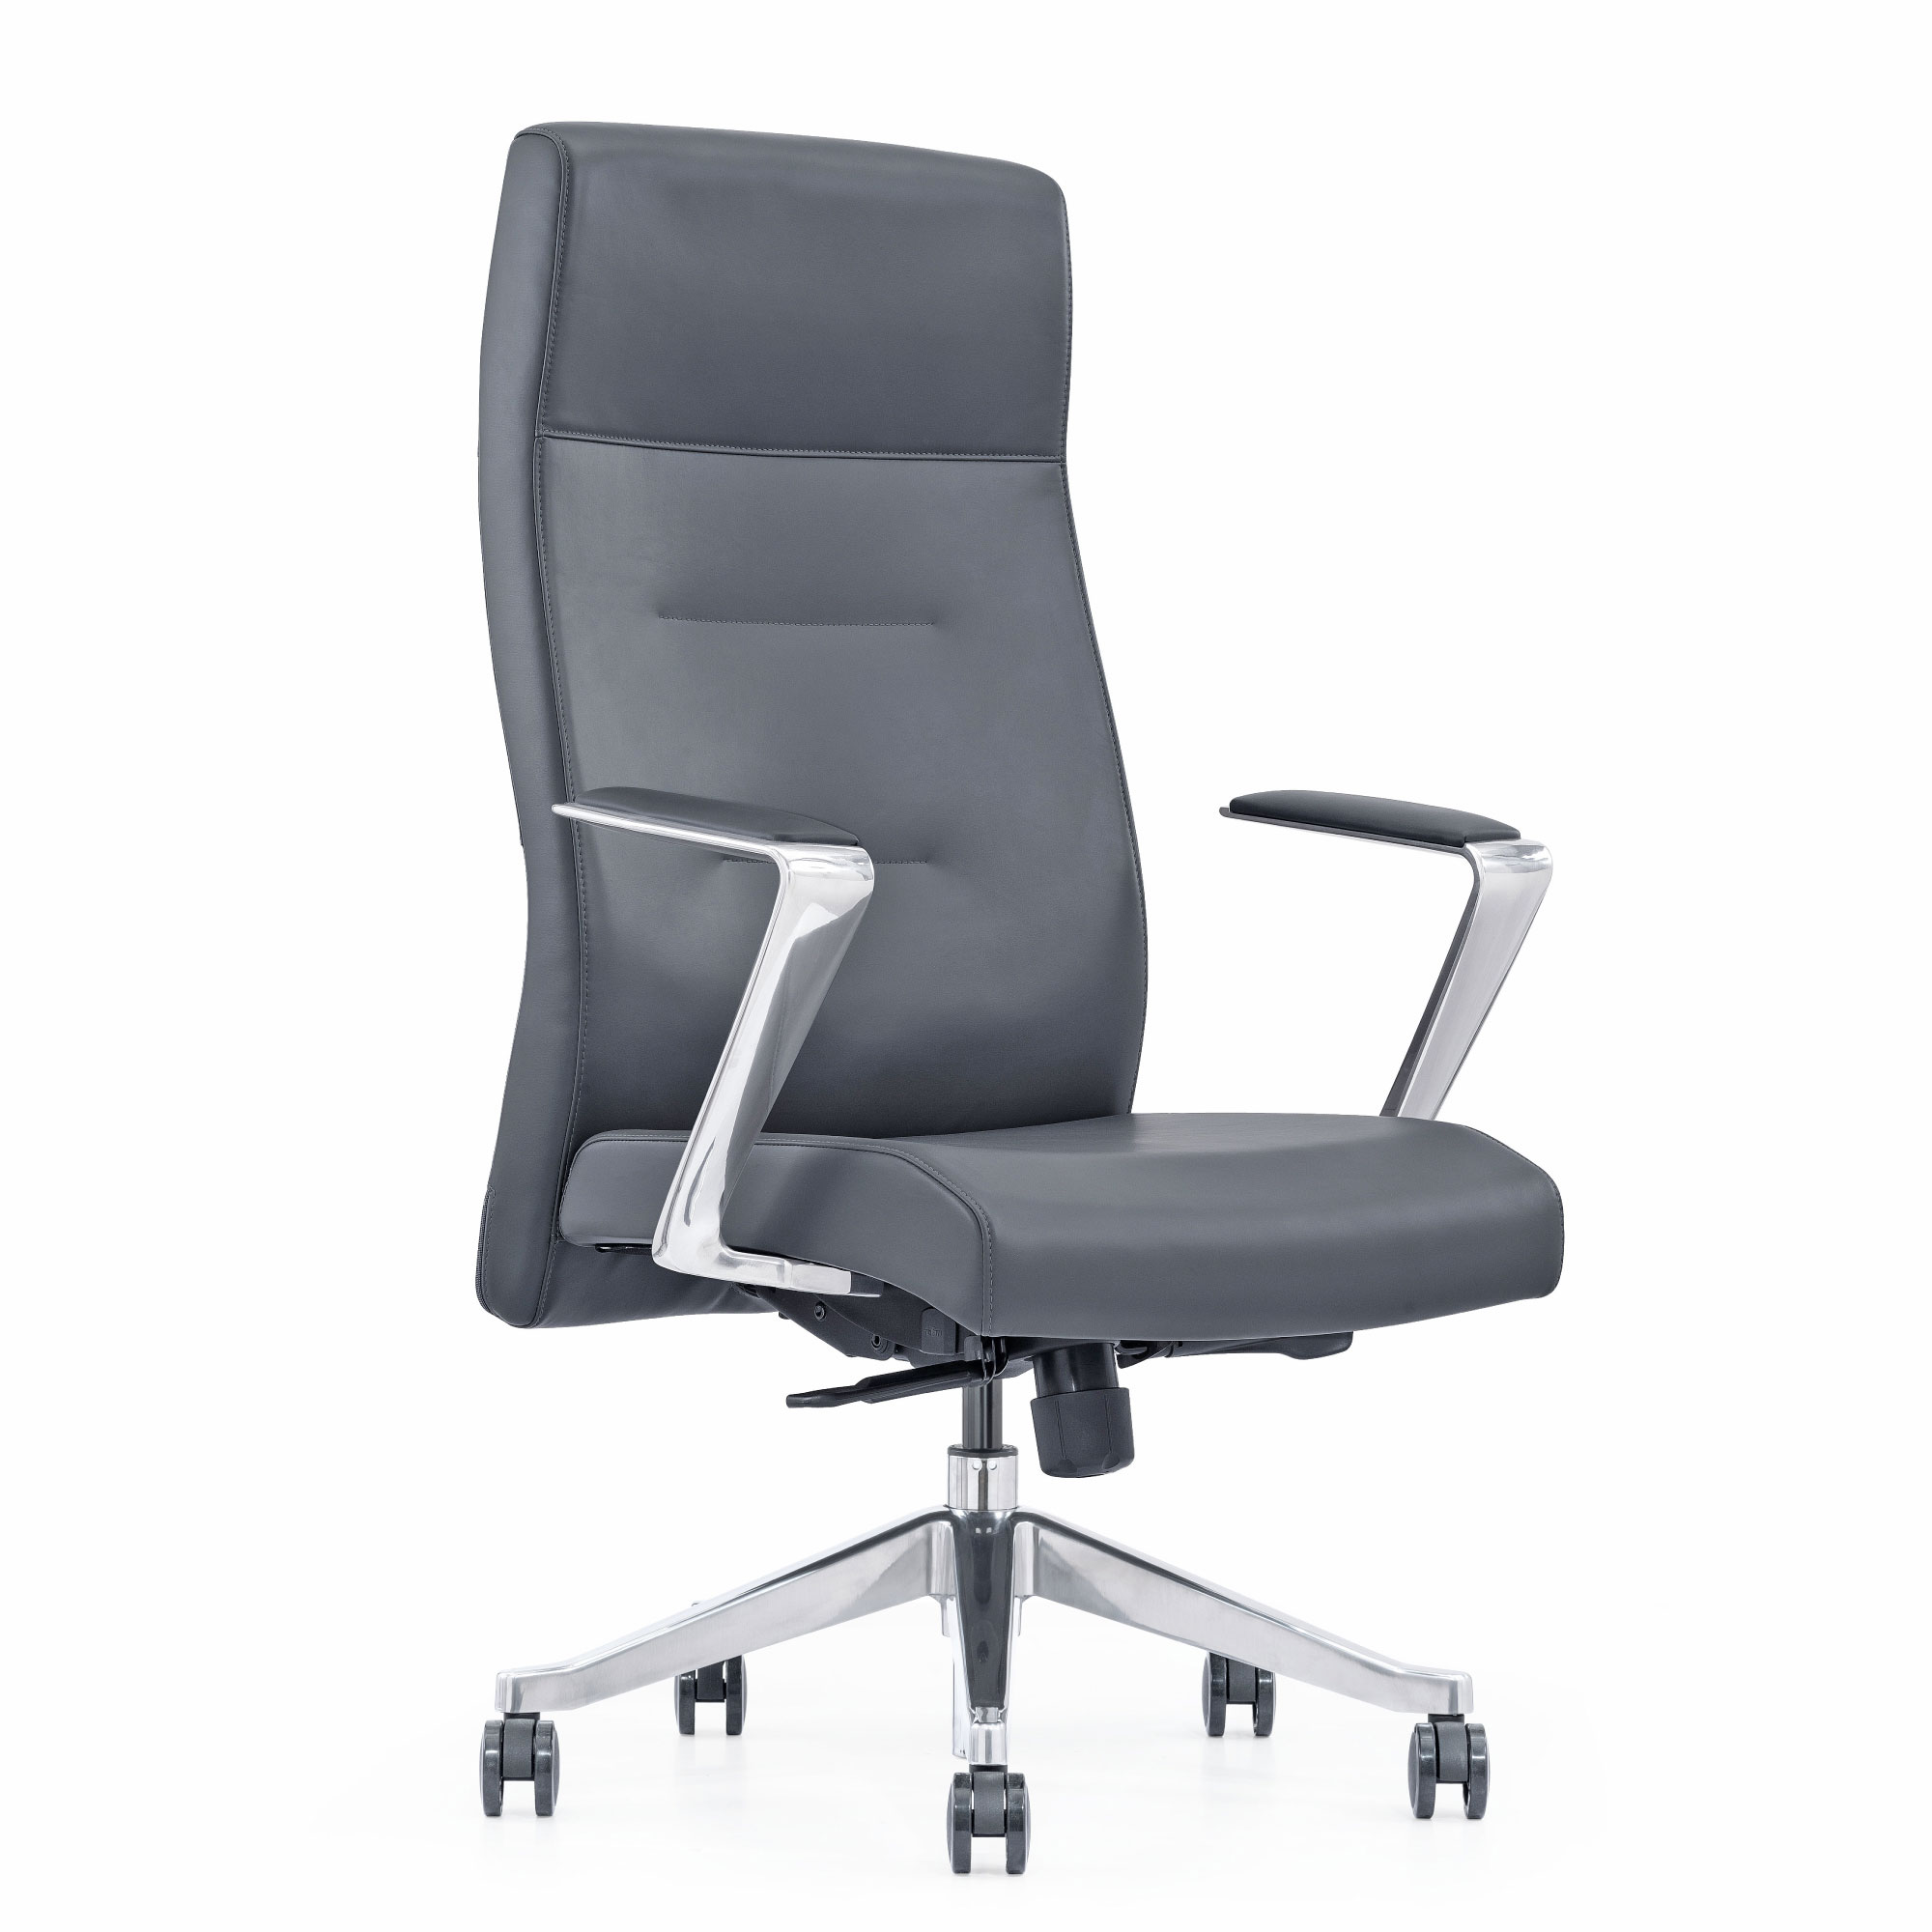 High-Back Executive Chair for Home Office